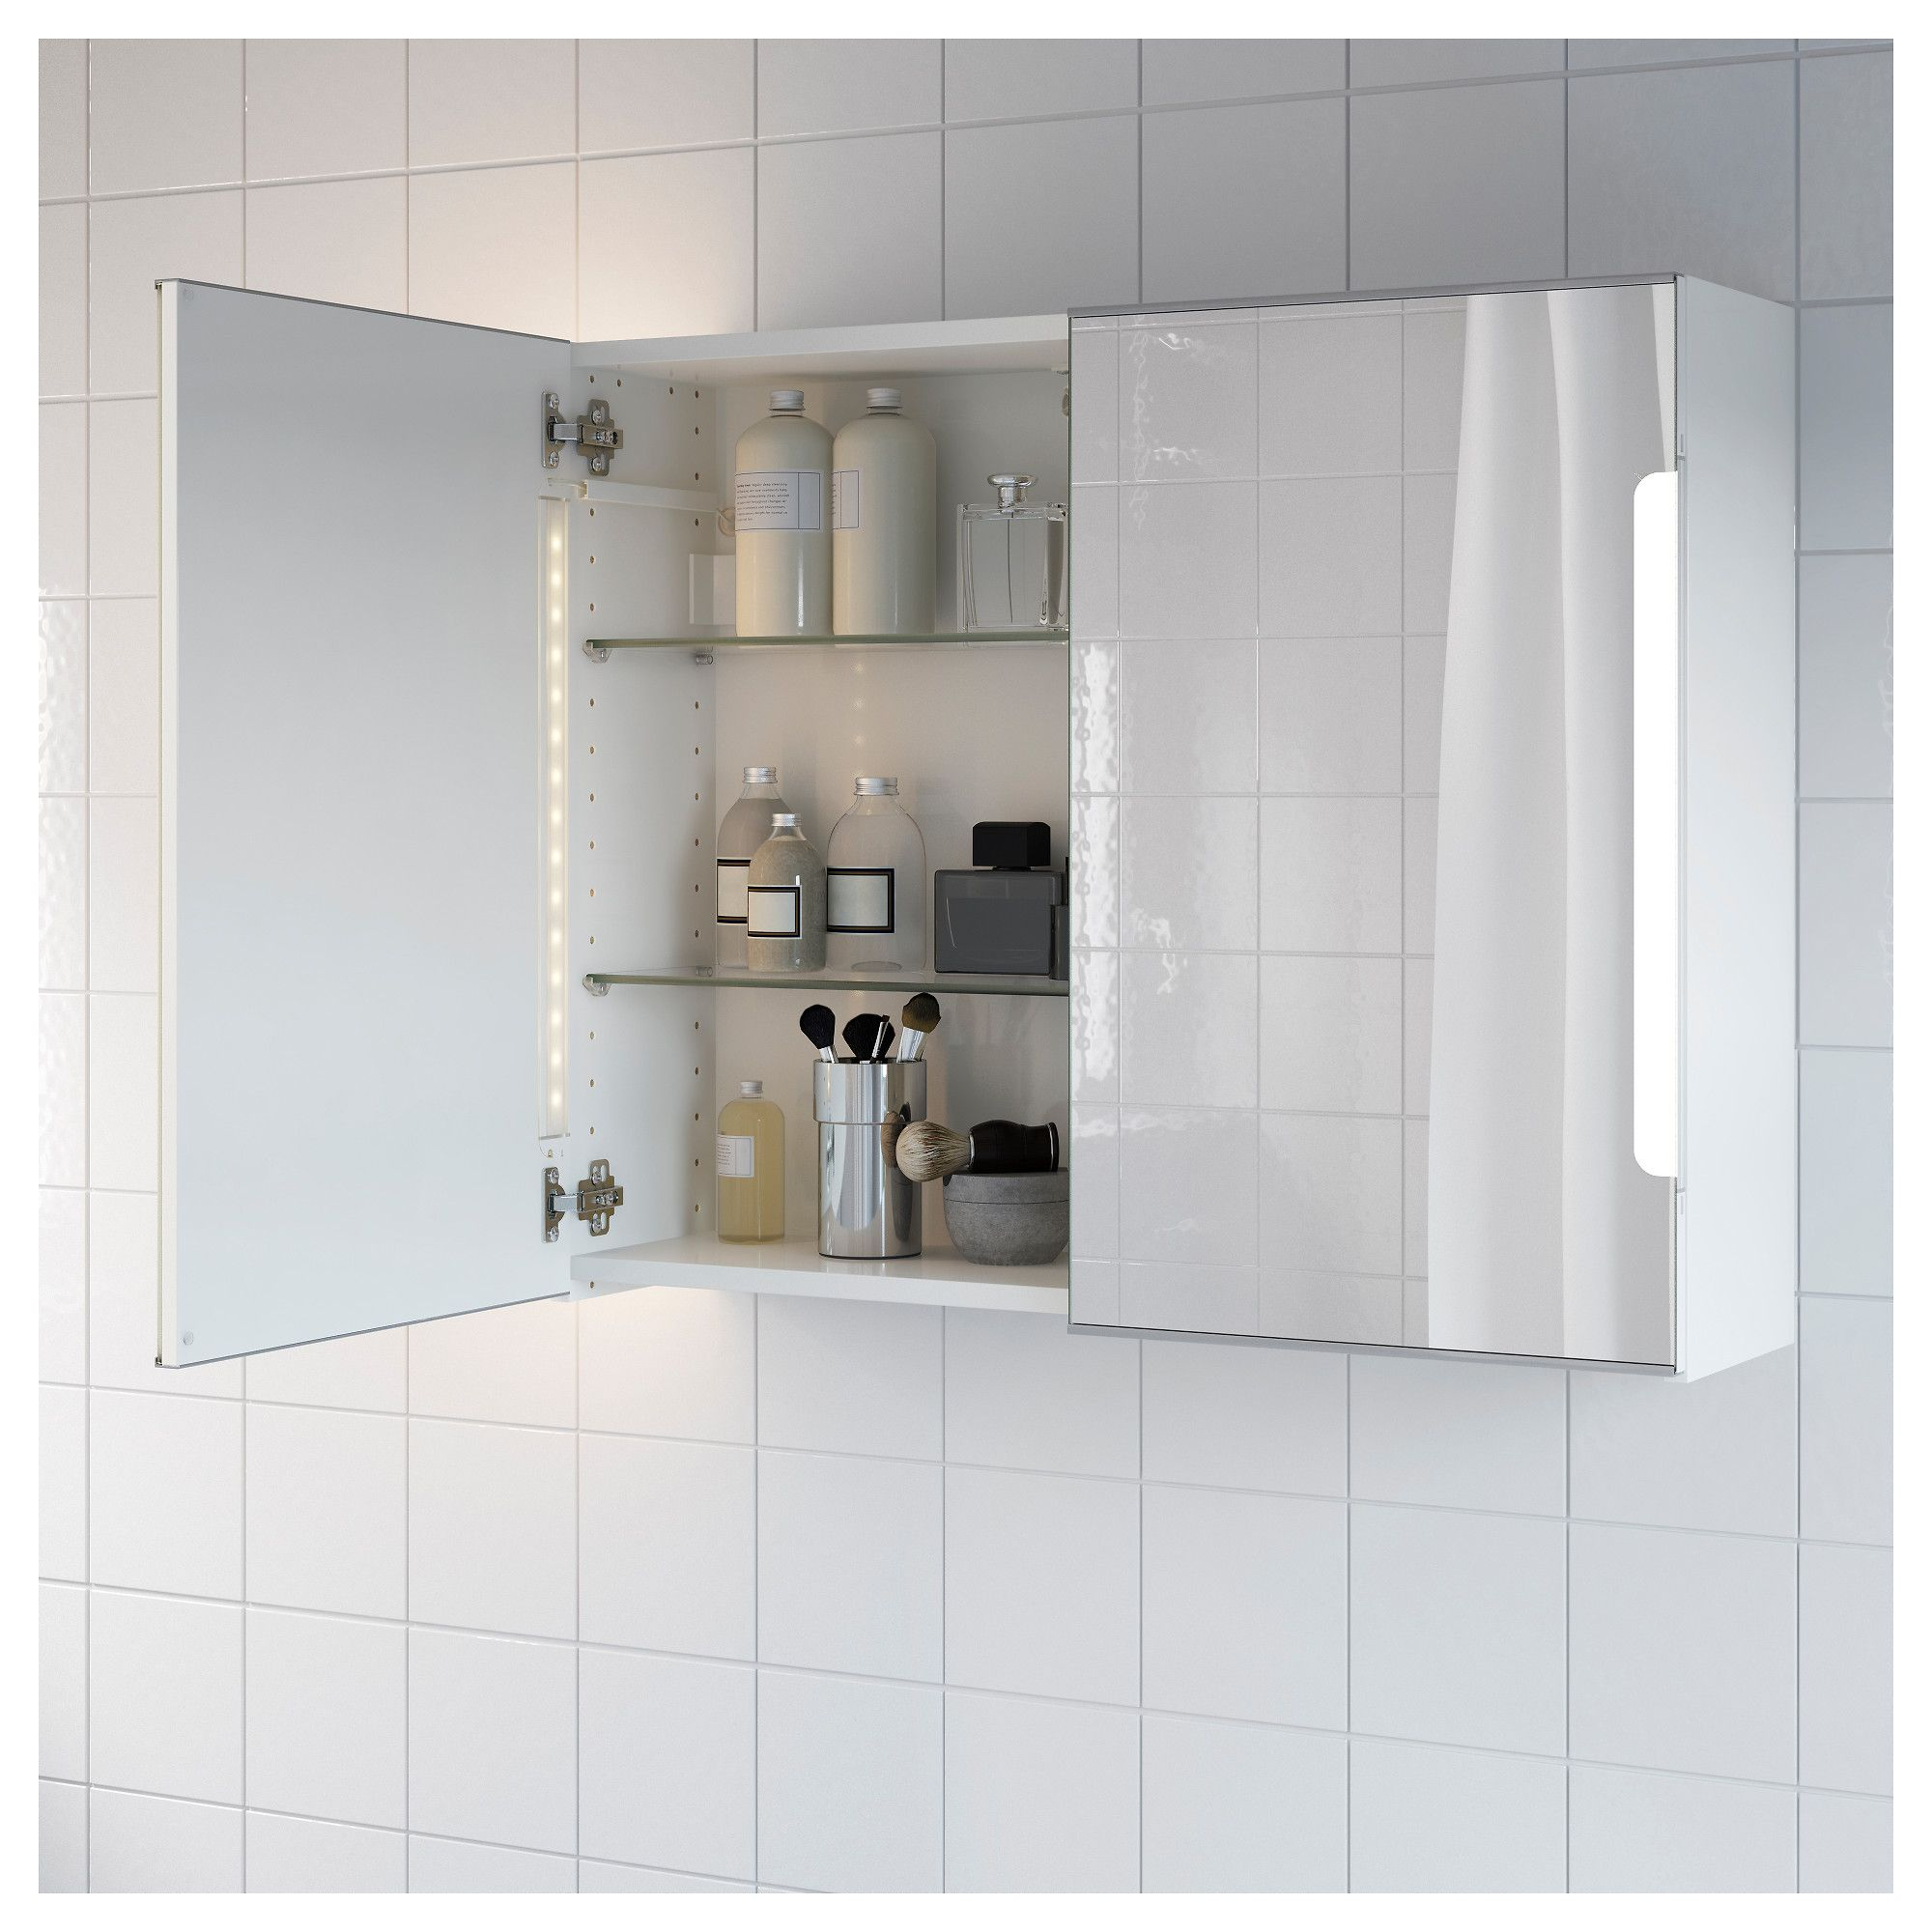 STORJORM Mirror cab 2 door/built-in lighting White IKEA | Products ...